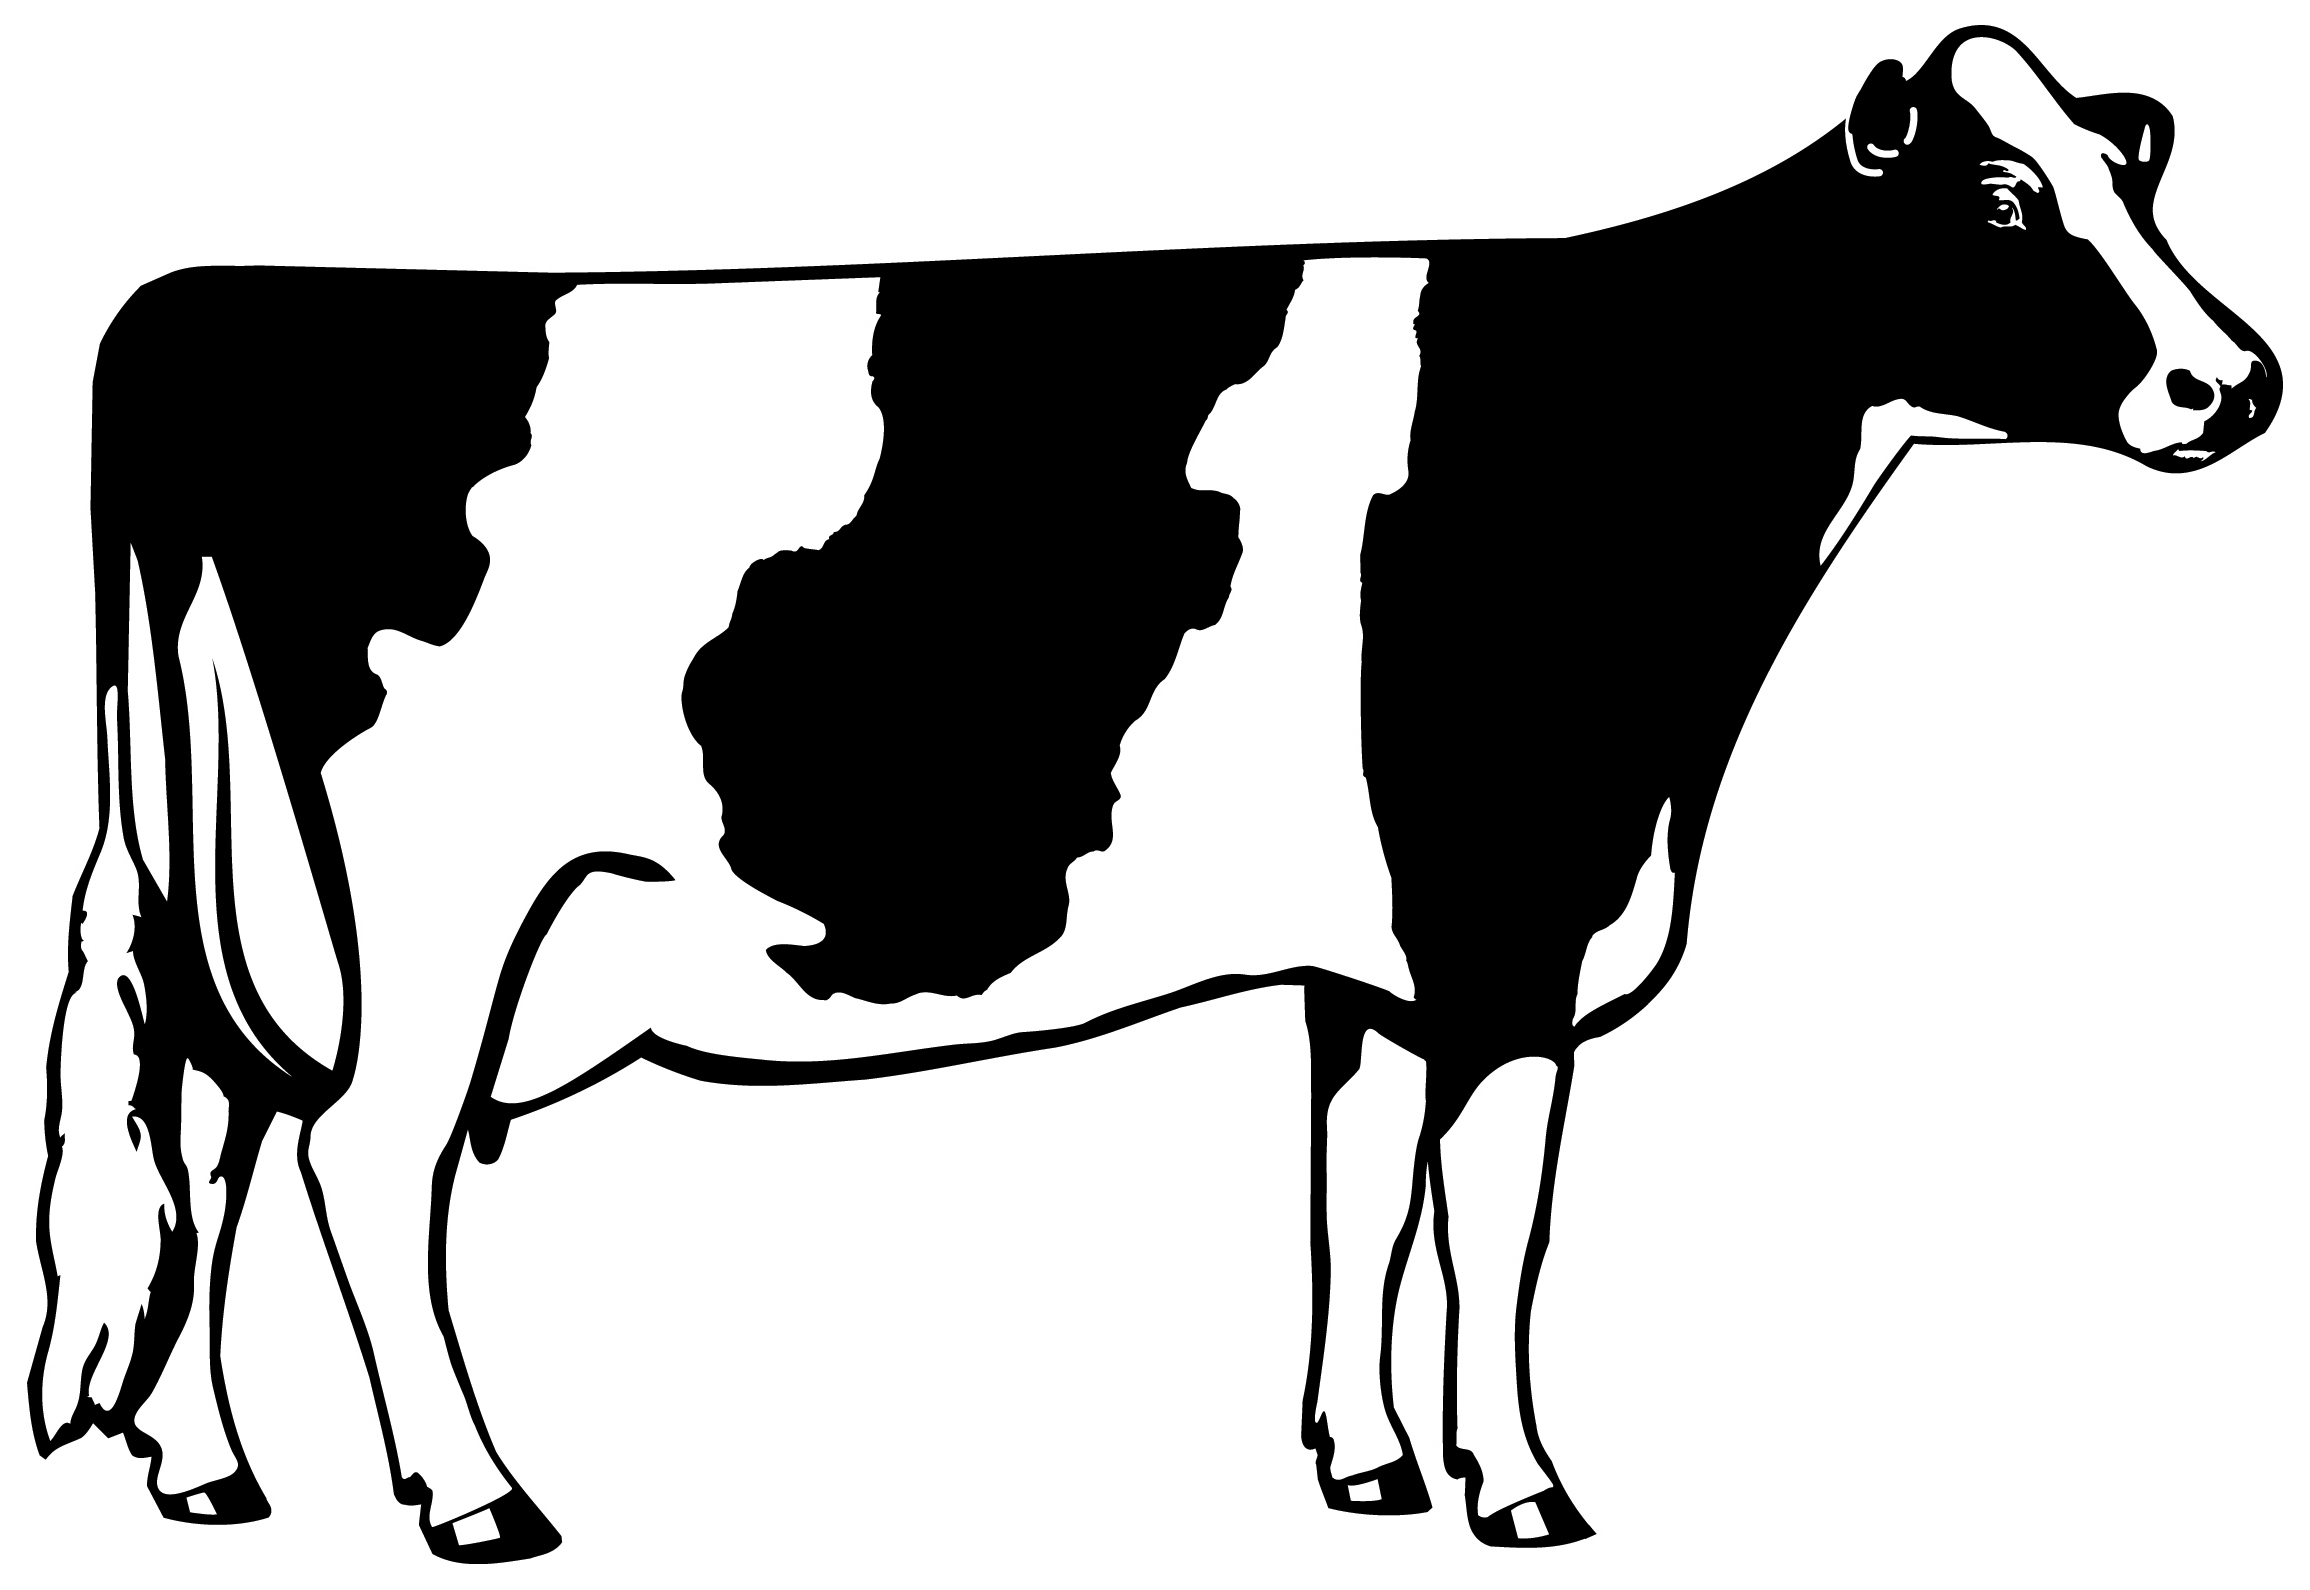 Cow clip art logo. Cattle silhouette at getdrawings